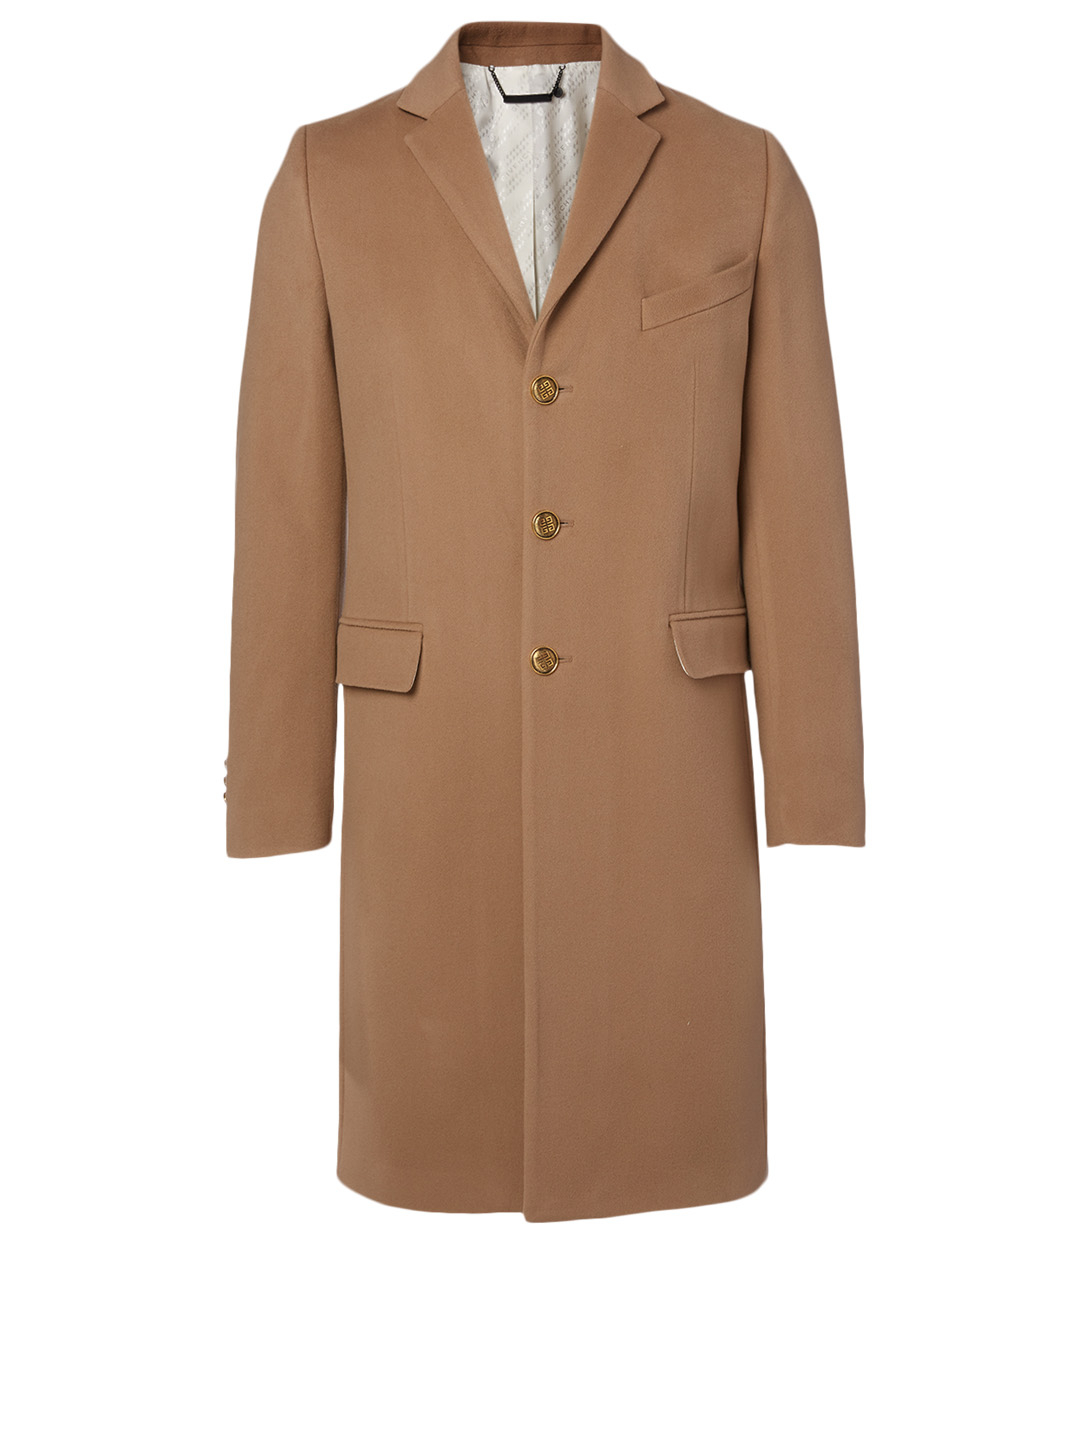 GIVENCHY Wool And Cashmere Coat With 4G Buttons Men's Beige